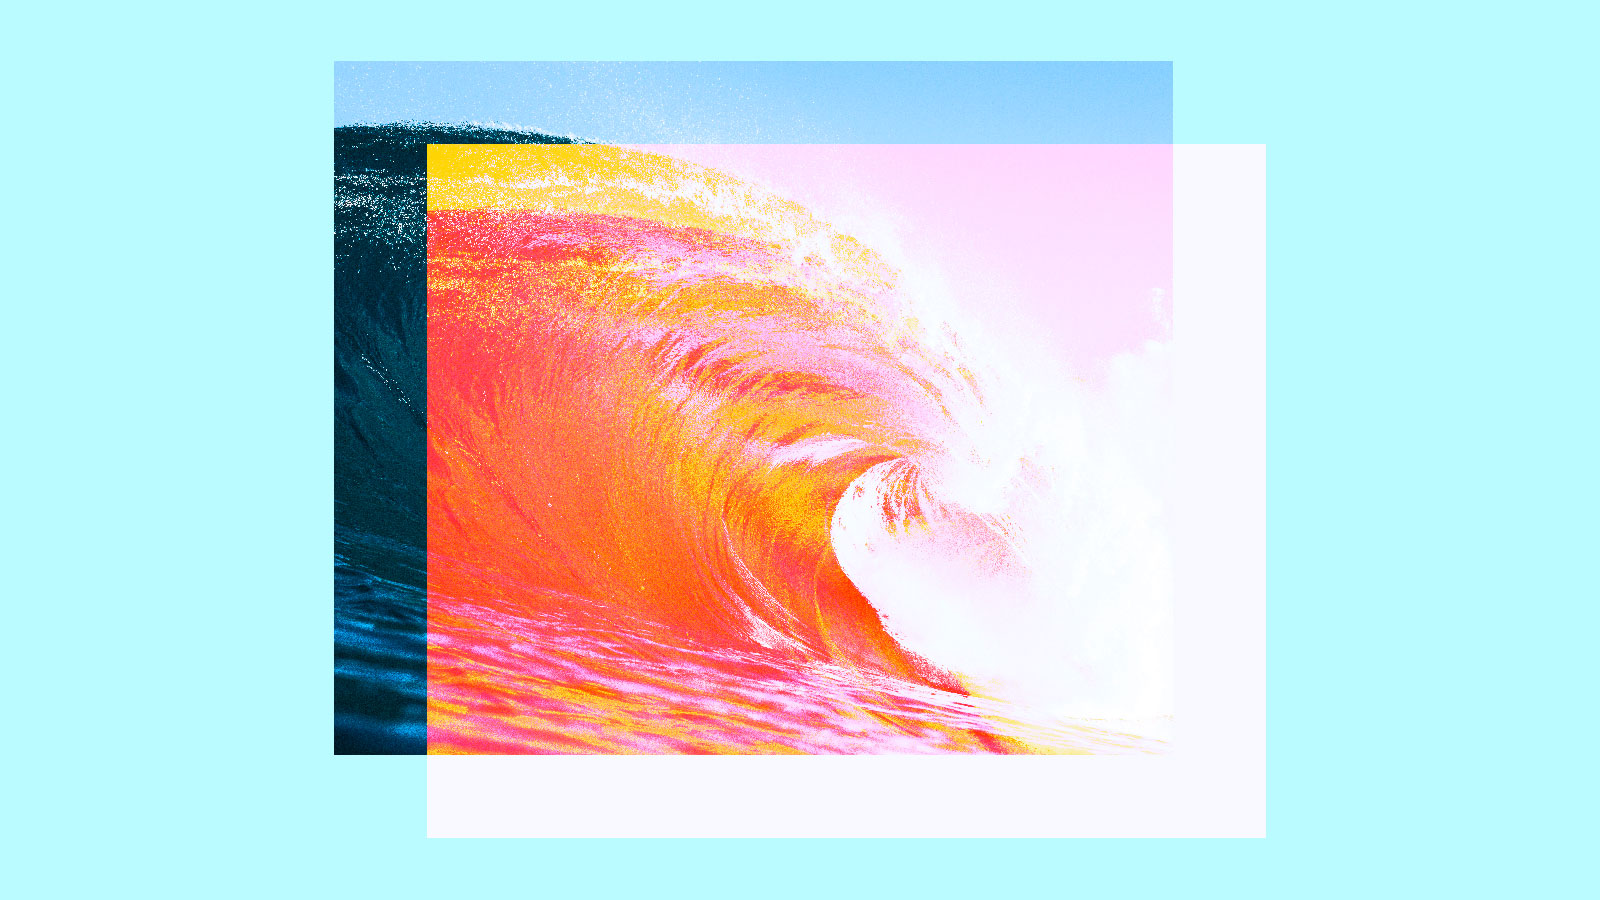 Collage: An ocean wave in shades of pink and orange and yellow